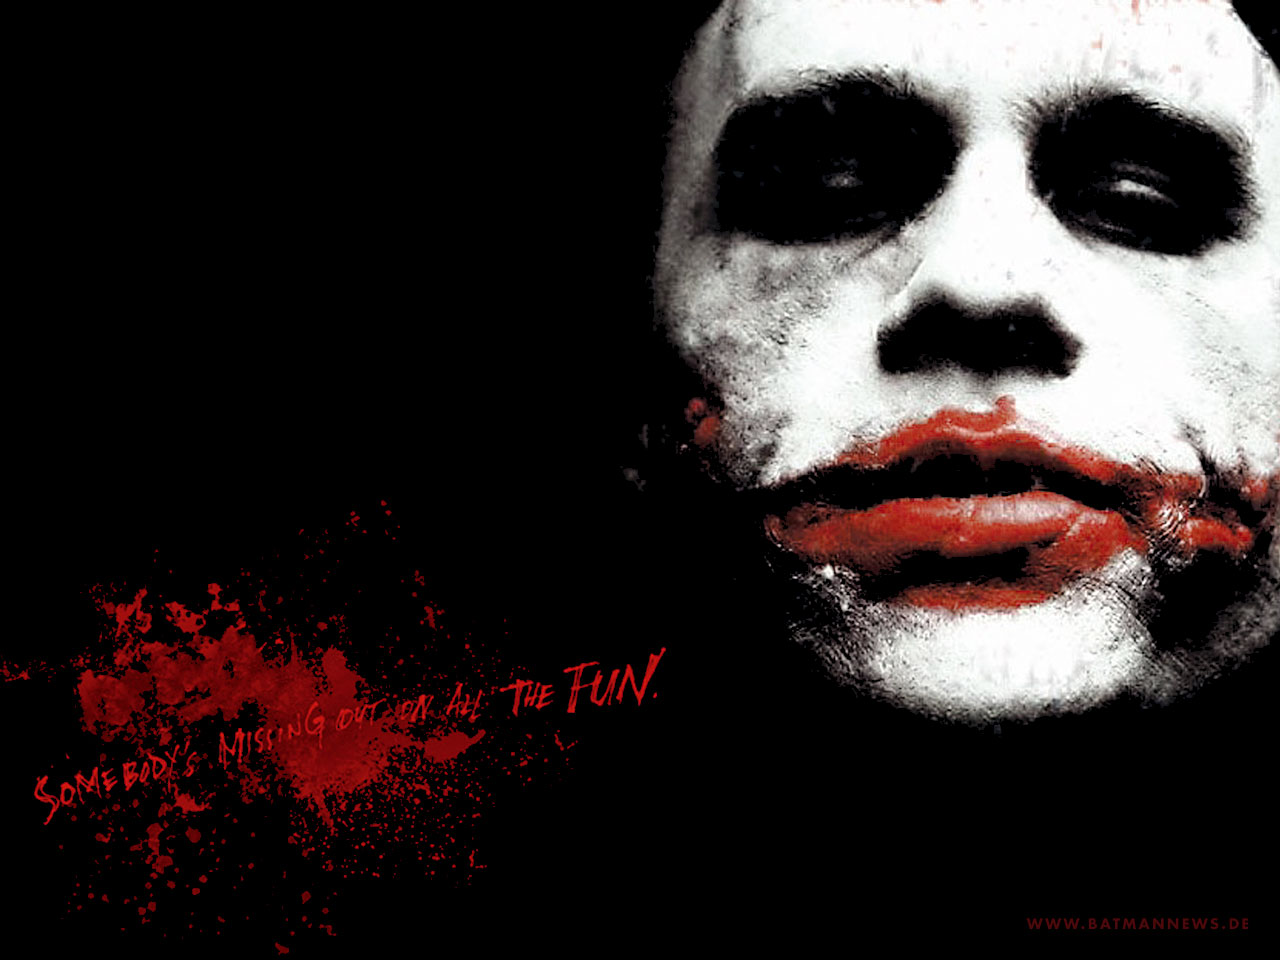 http://1.bp.blogspot.com/-ZK3Yvt-i_vw/TssH7u4YTqI/AAAAAAAAA0E/6v_rzGdjLi0/s1600/the_joker_heath_ledger_batman_dark_knight_desktop_1280x960_wallpaper-105857.jpeg